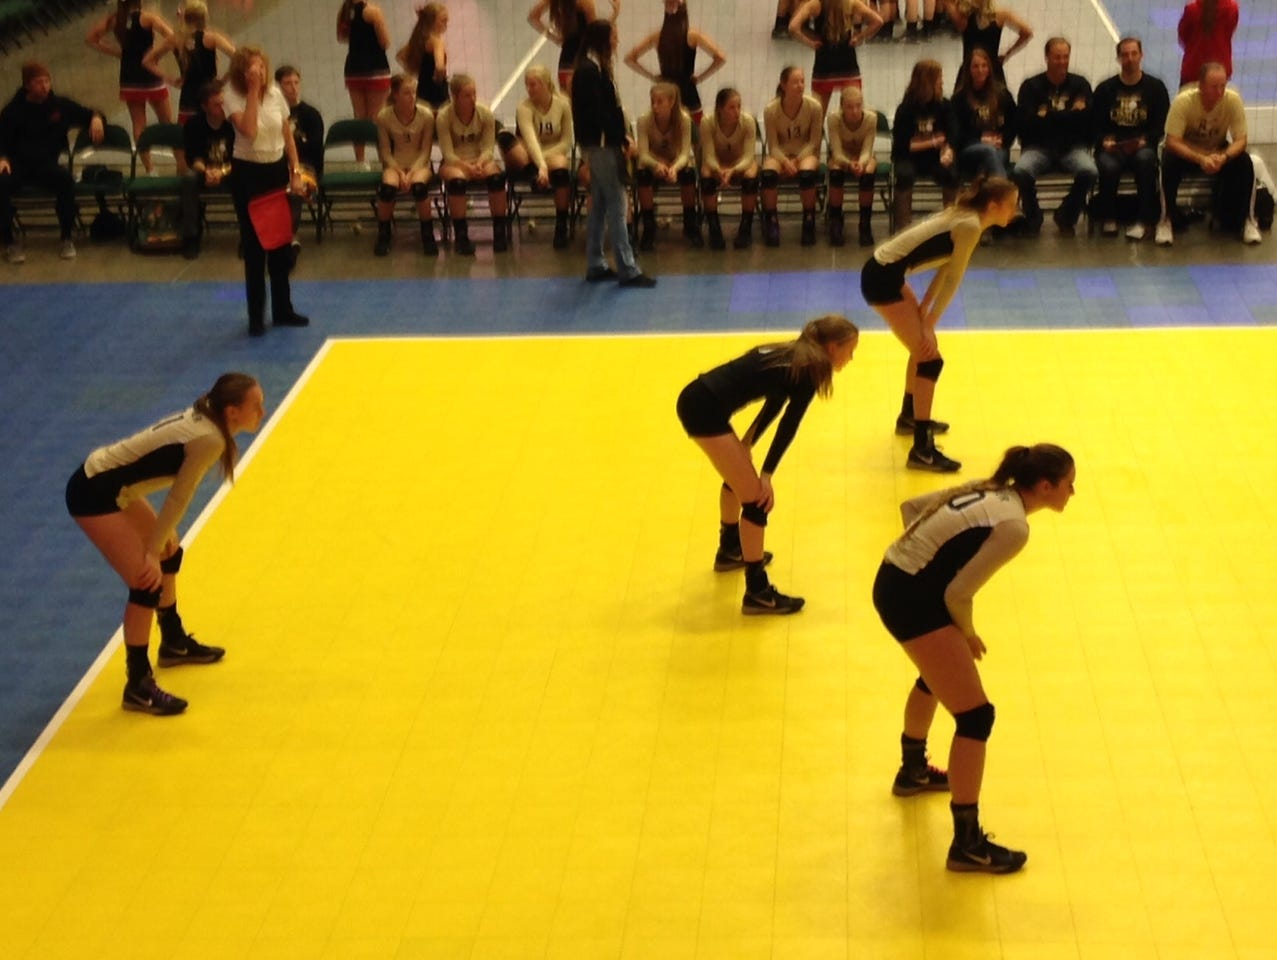 Desert Hills volleyball players get into position during the first set against Richfield on Wednesday in Orem.